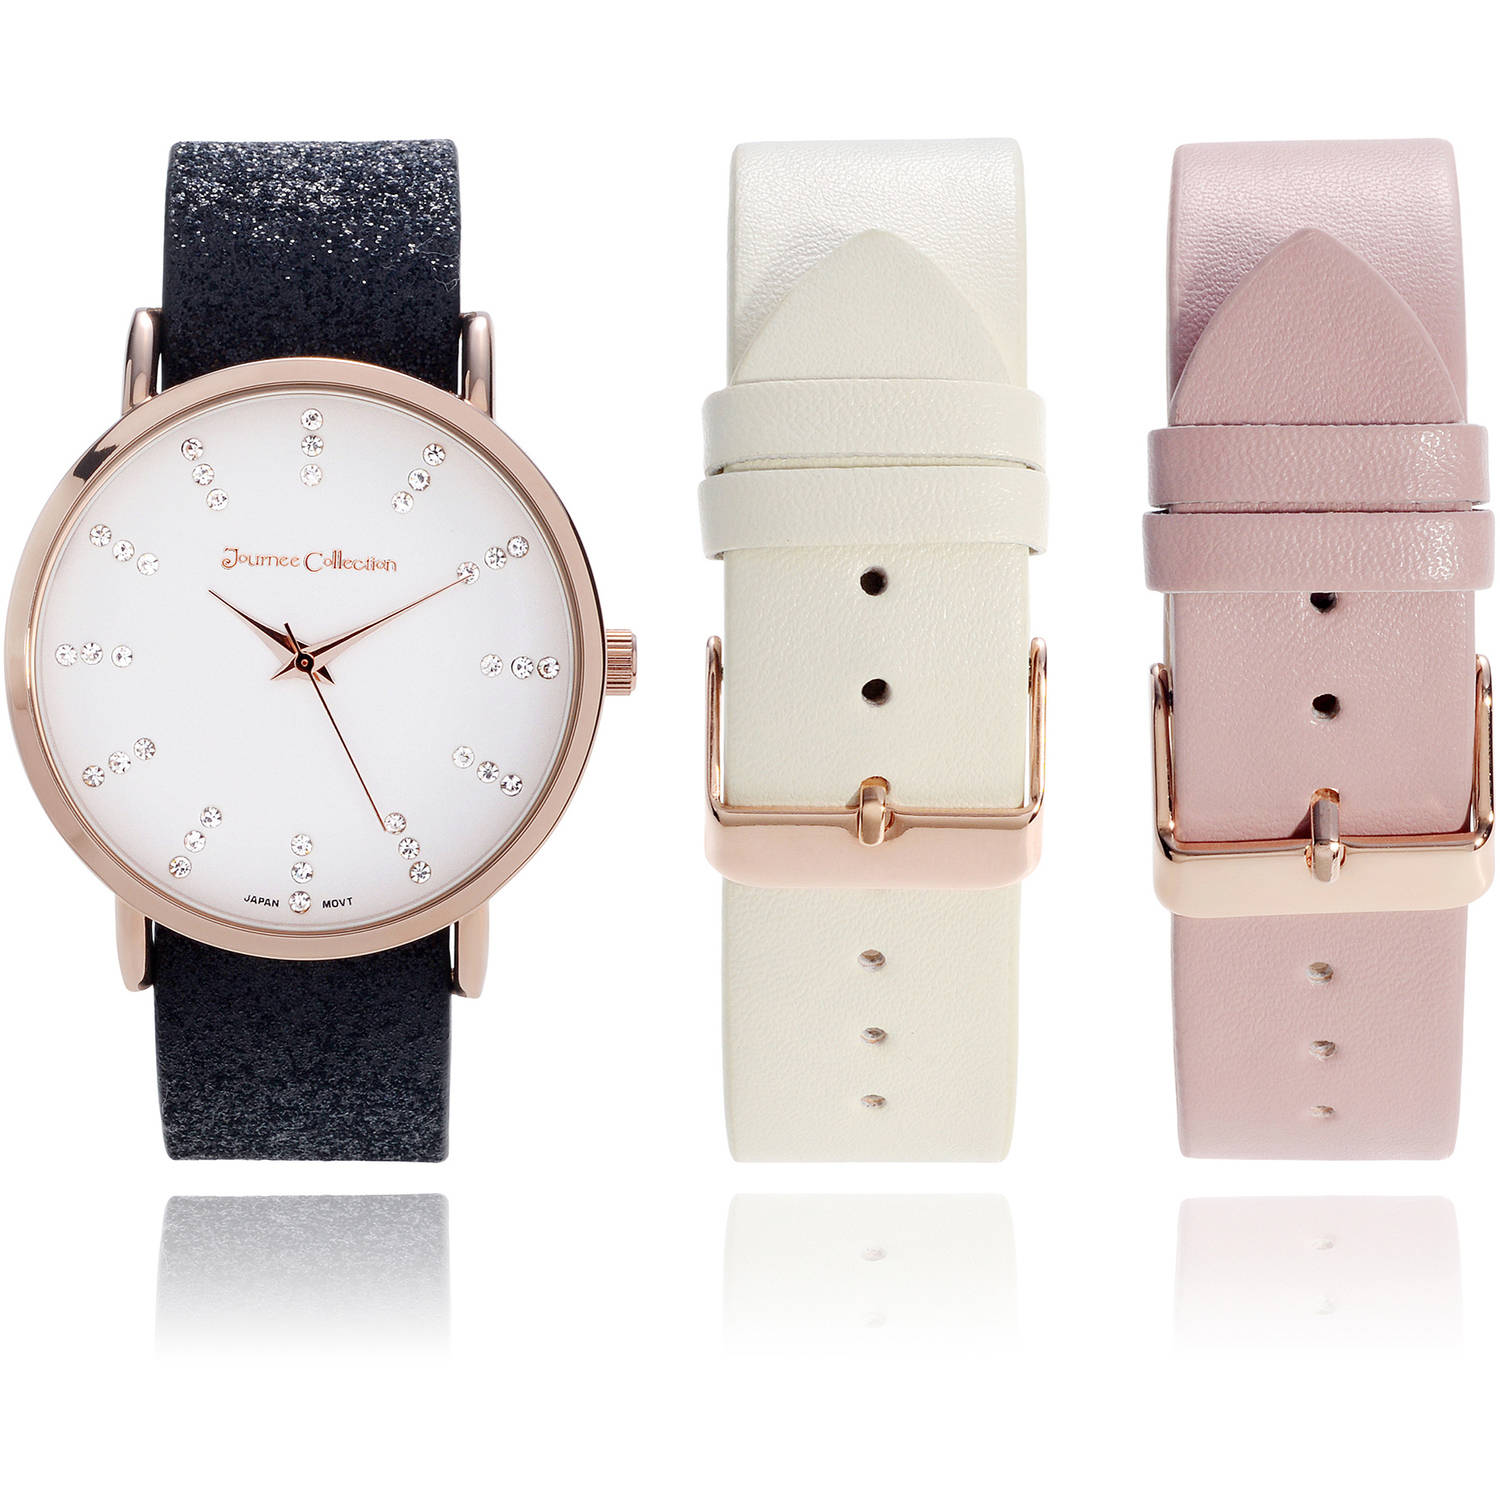 Journee Collection Women's Rhinestone Interchangeable Leather Strap Fashion Watch, Rose Gold